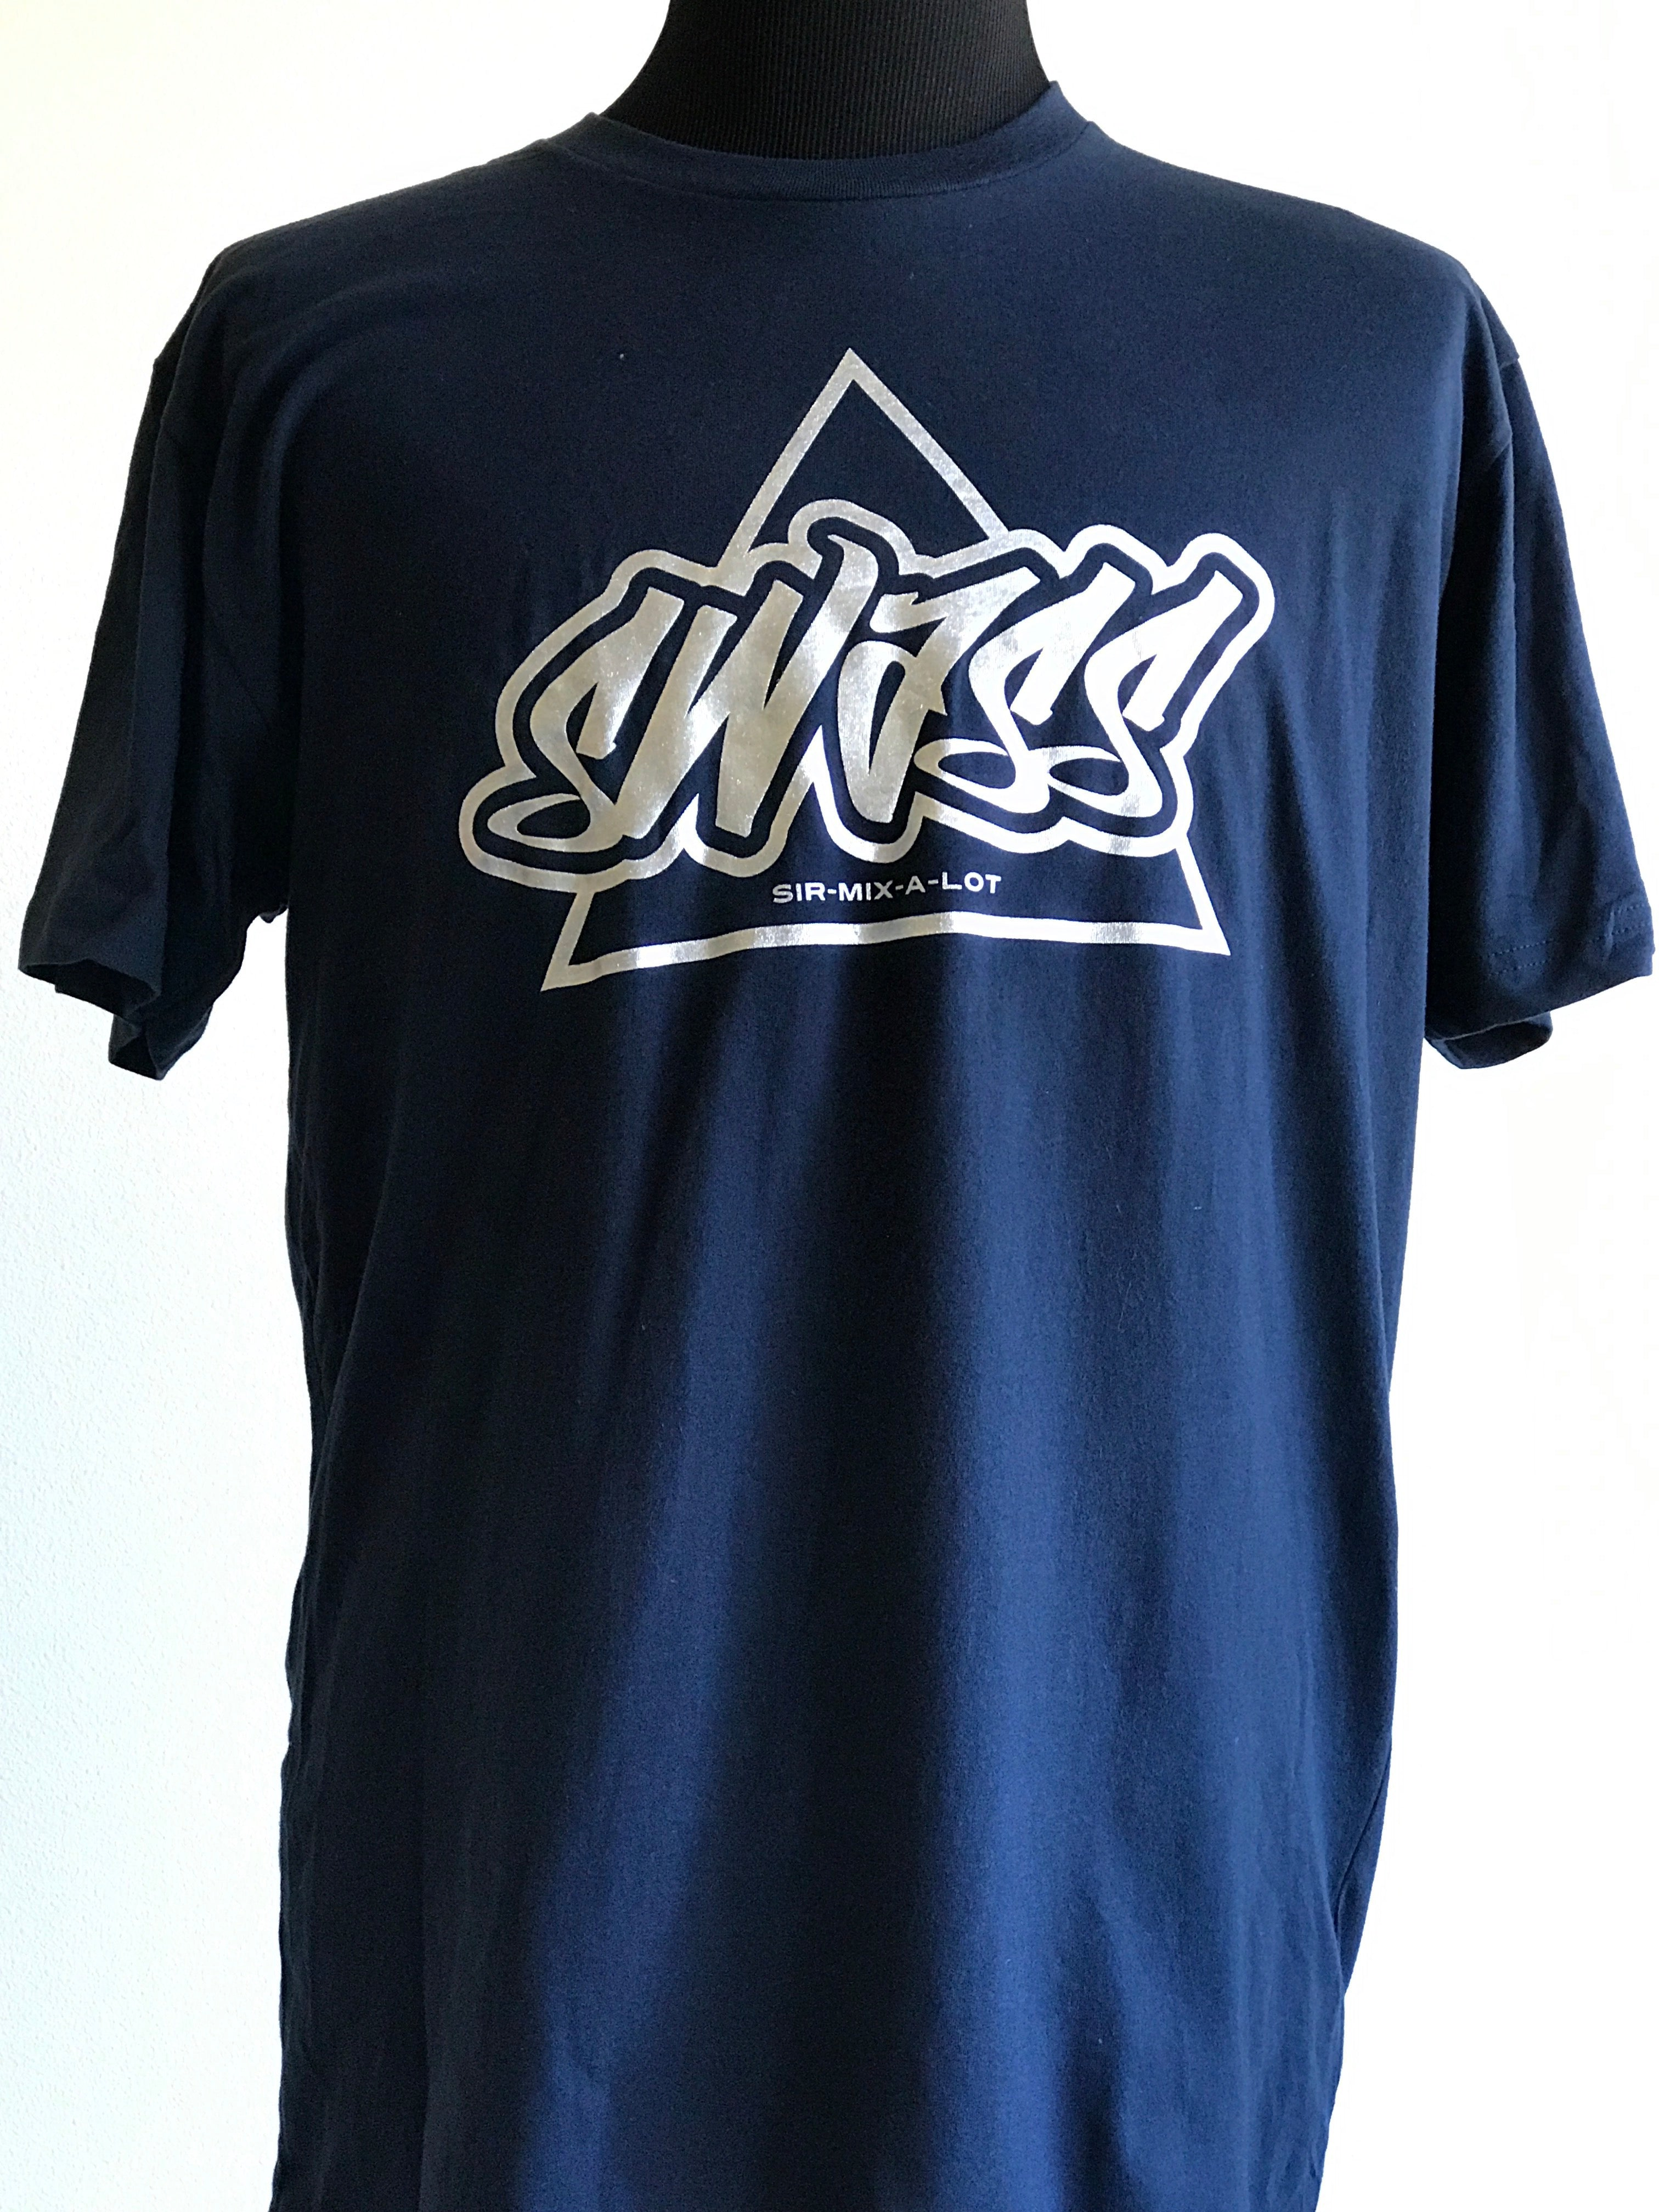 SWASS Blue/Silver (Men's)